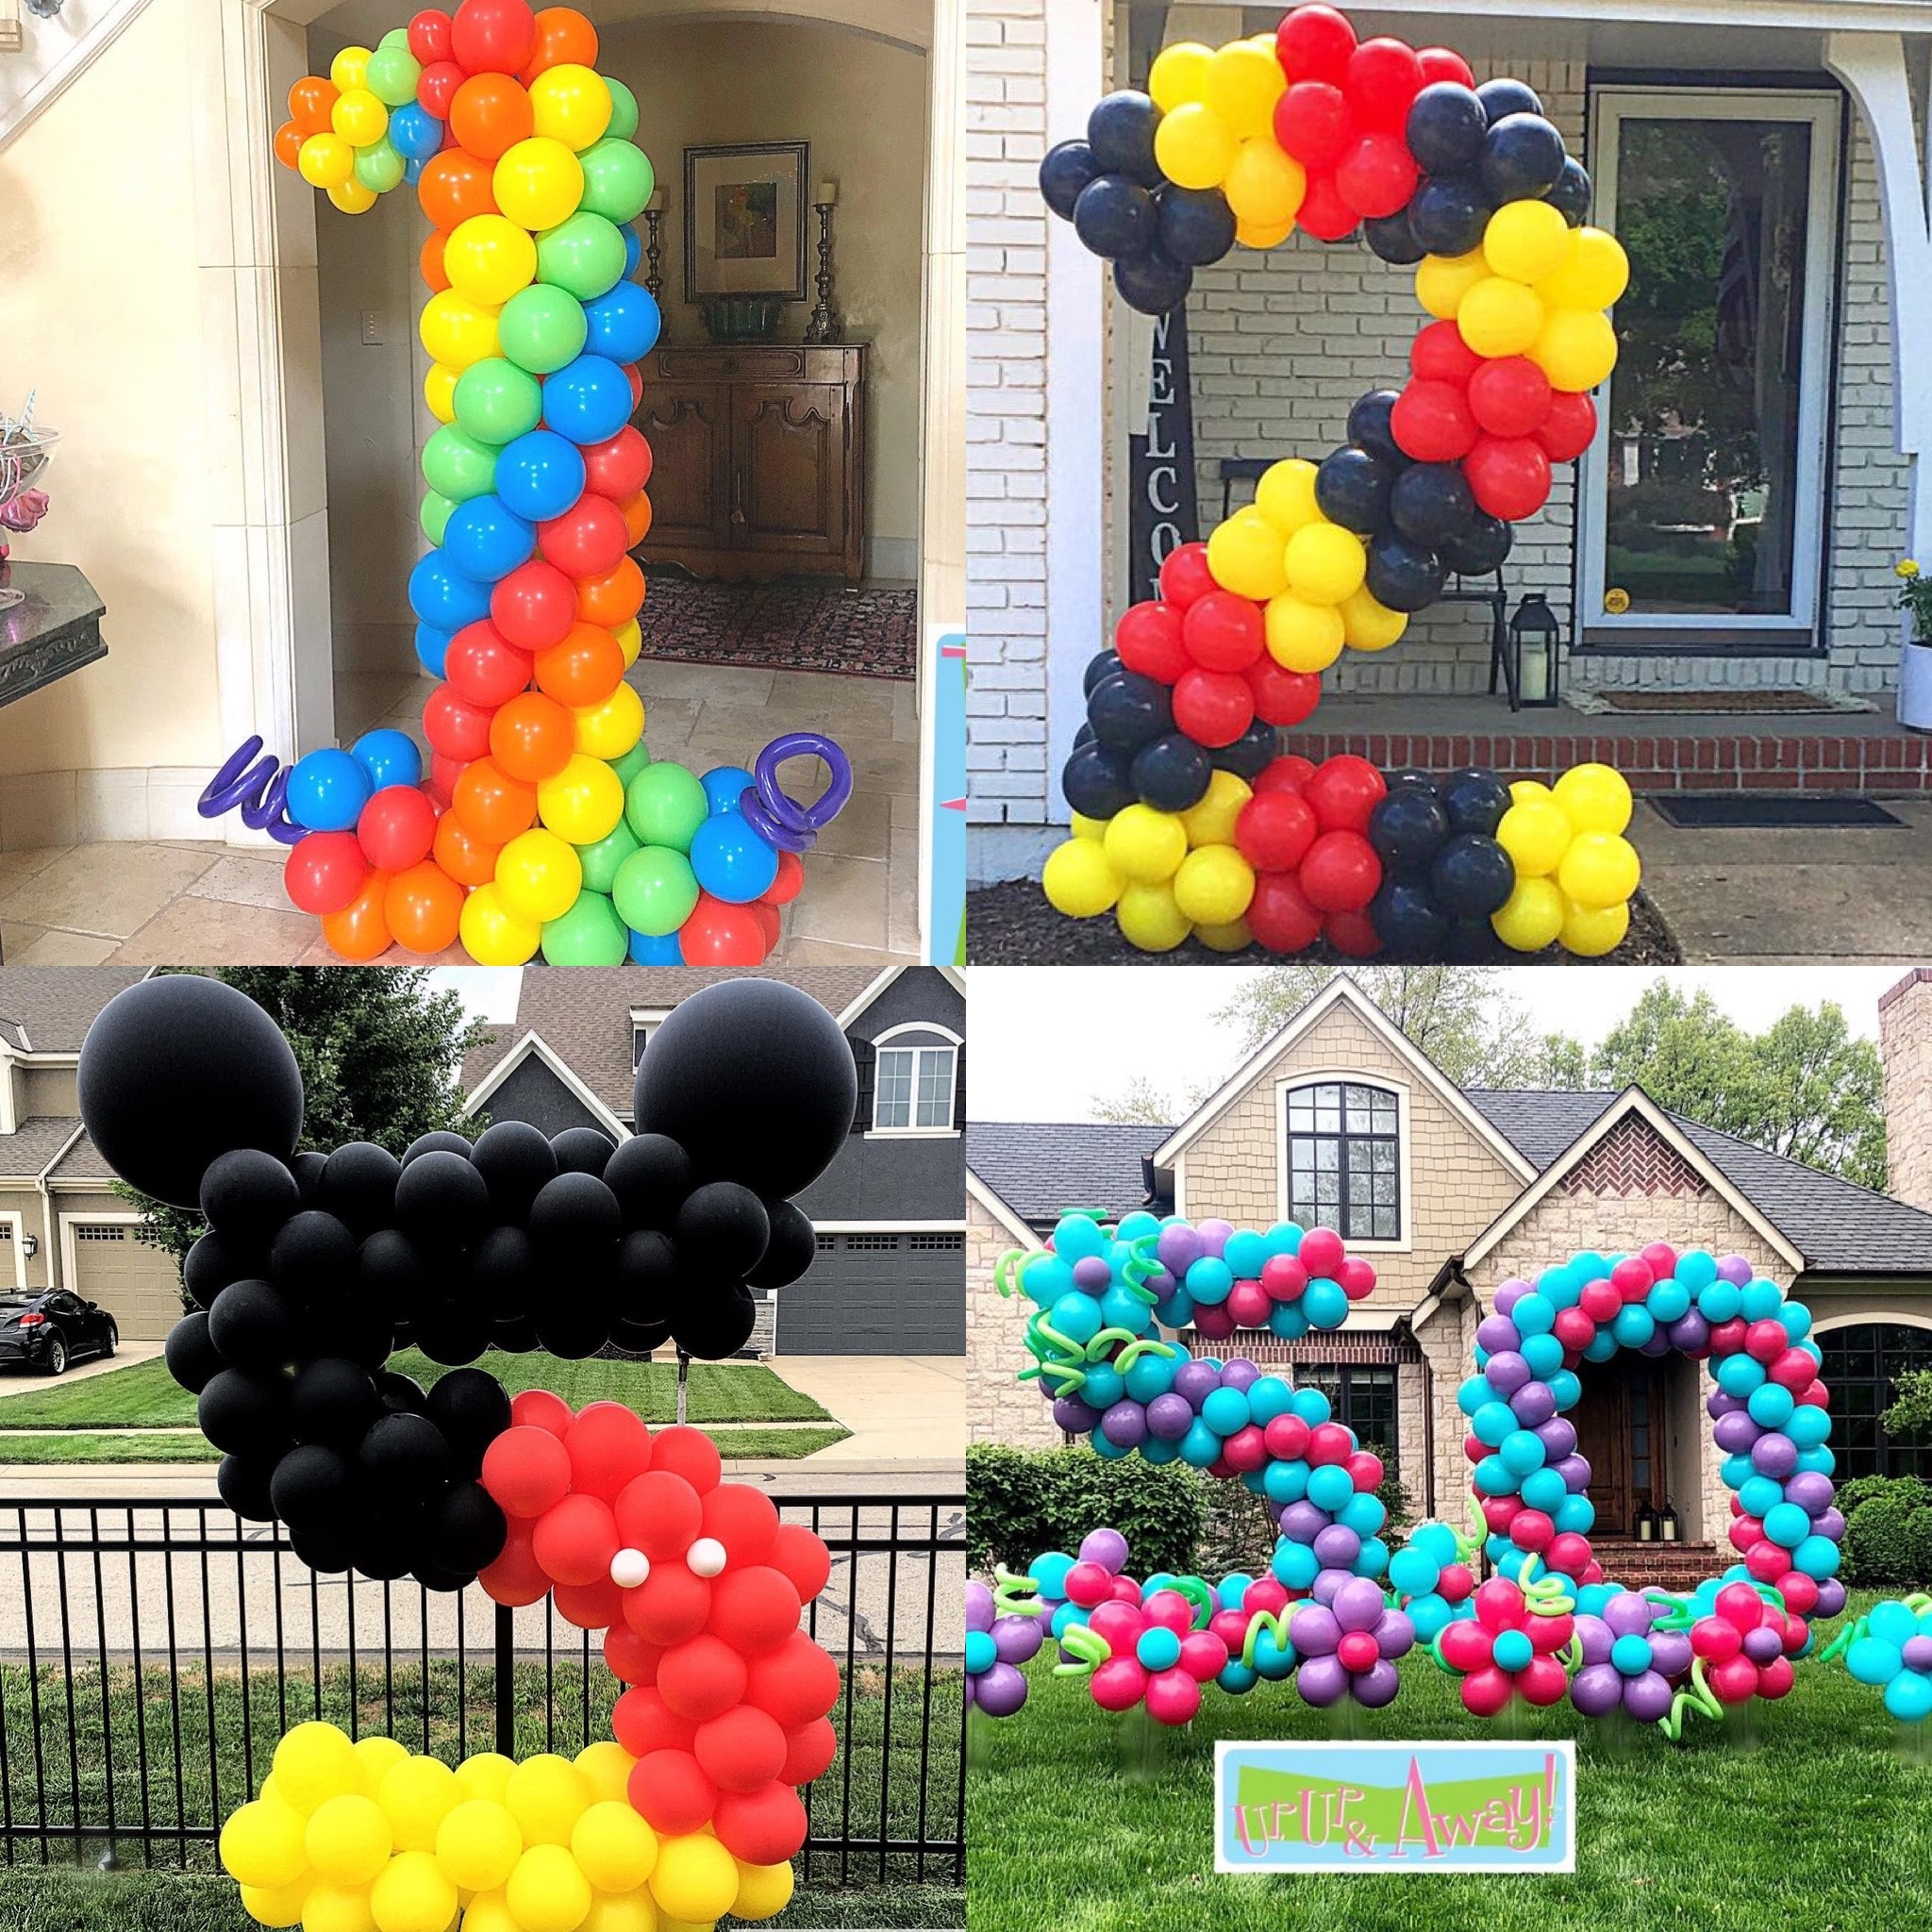 Up, Up & Away! Balloon Number Sculptures